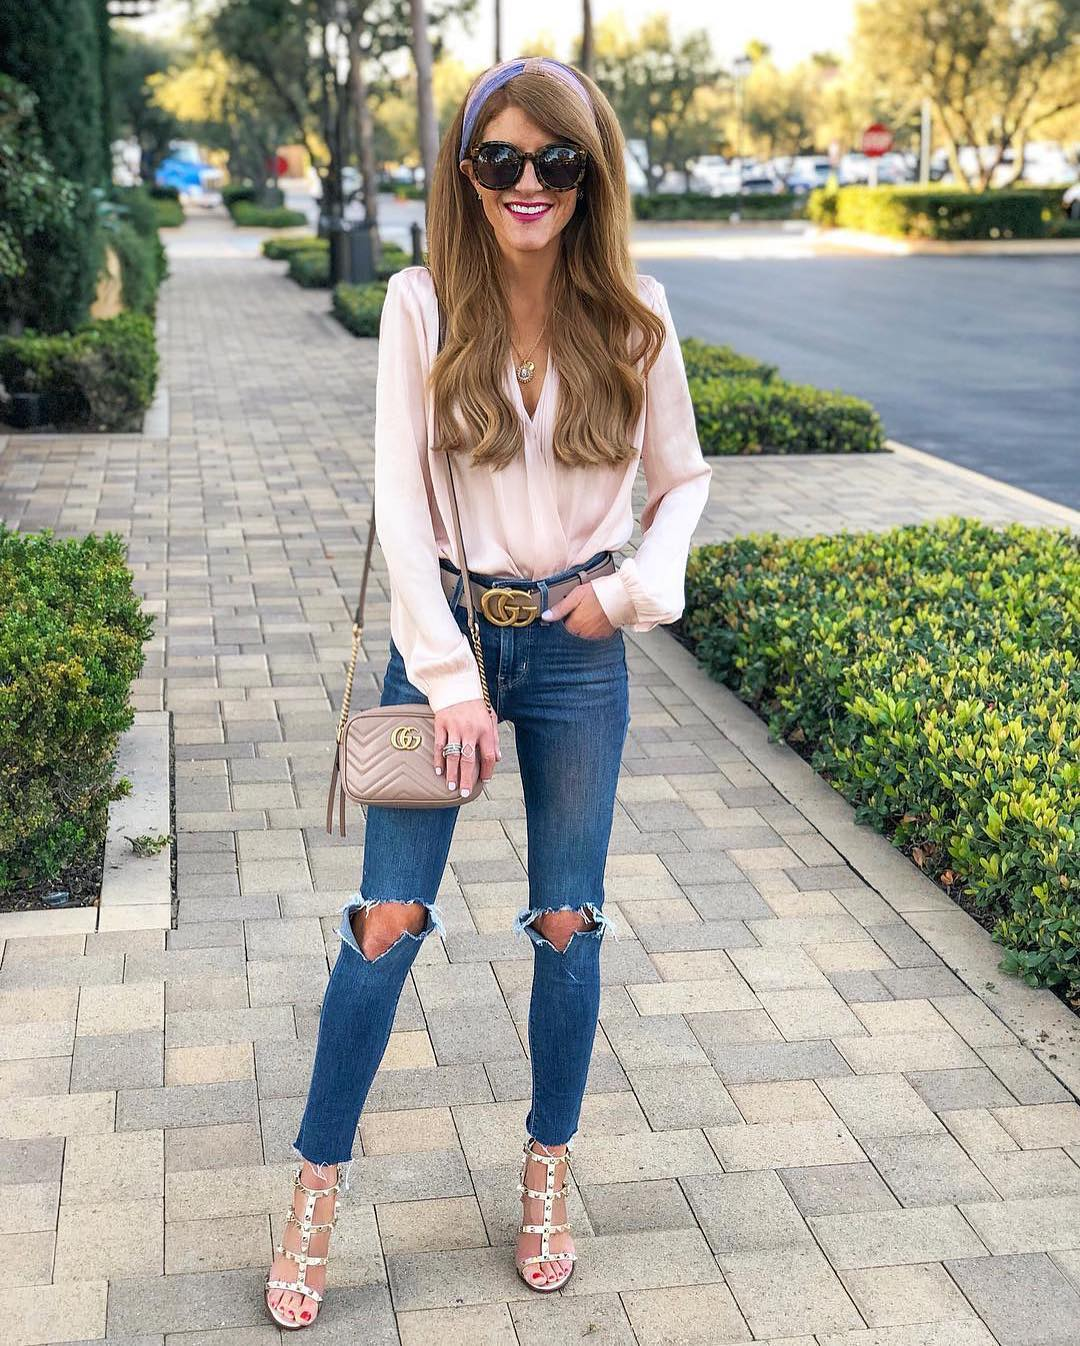 Cream blush blouse and knee ripped blue jeans for weekend parties 2021